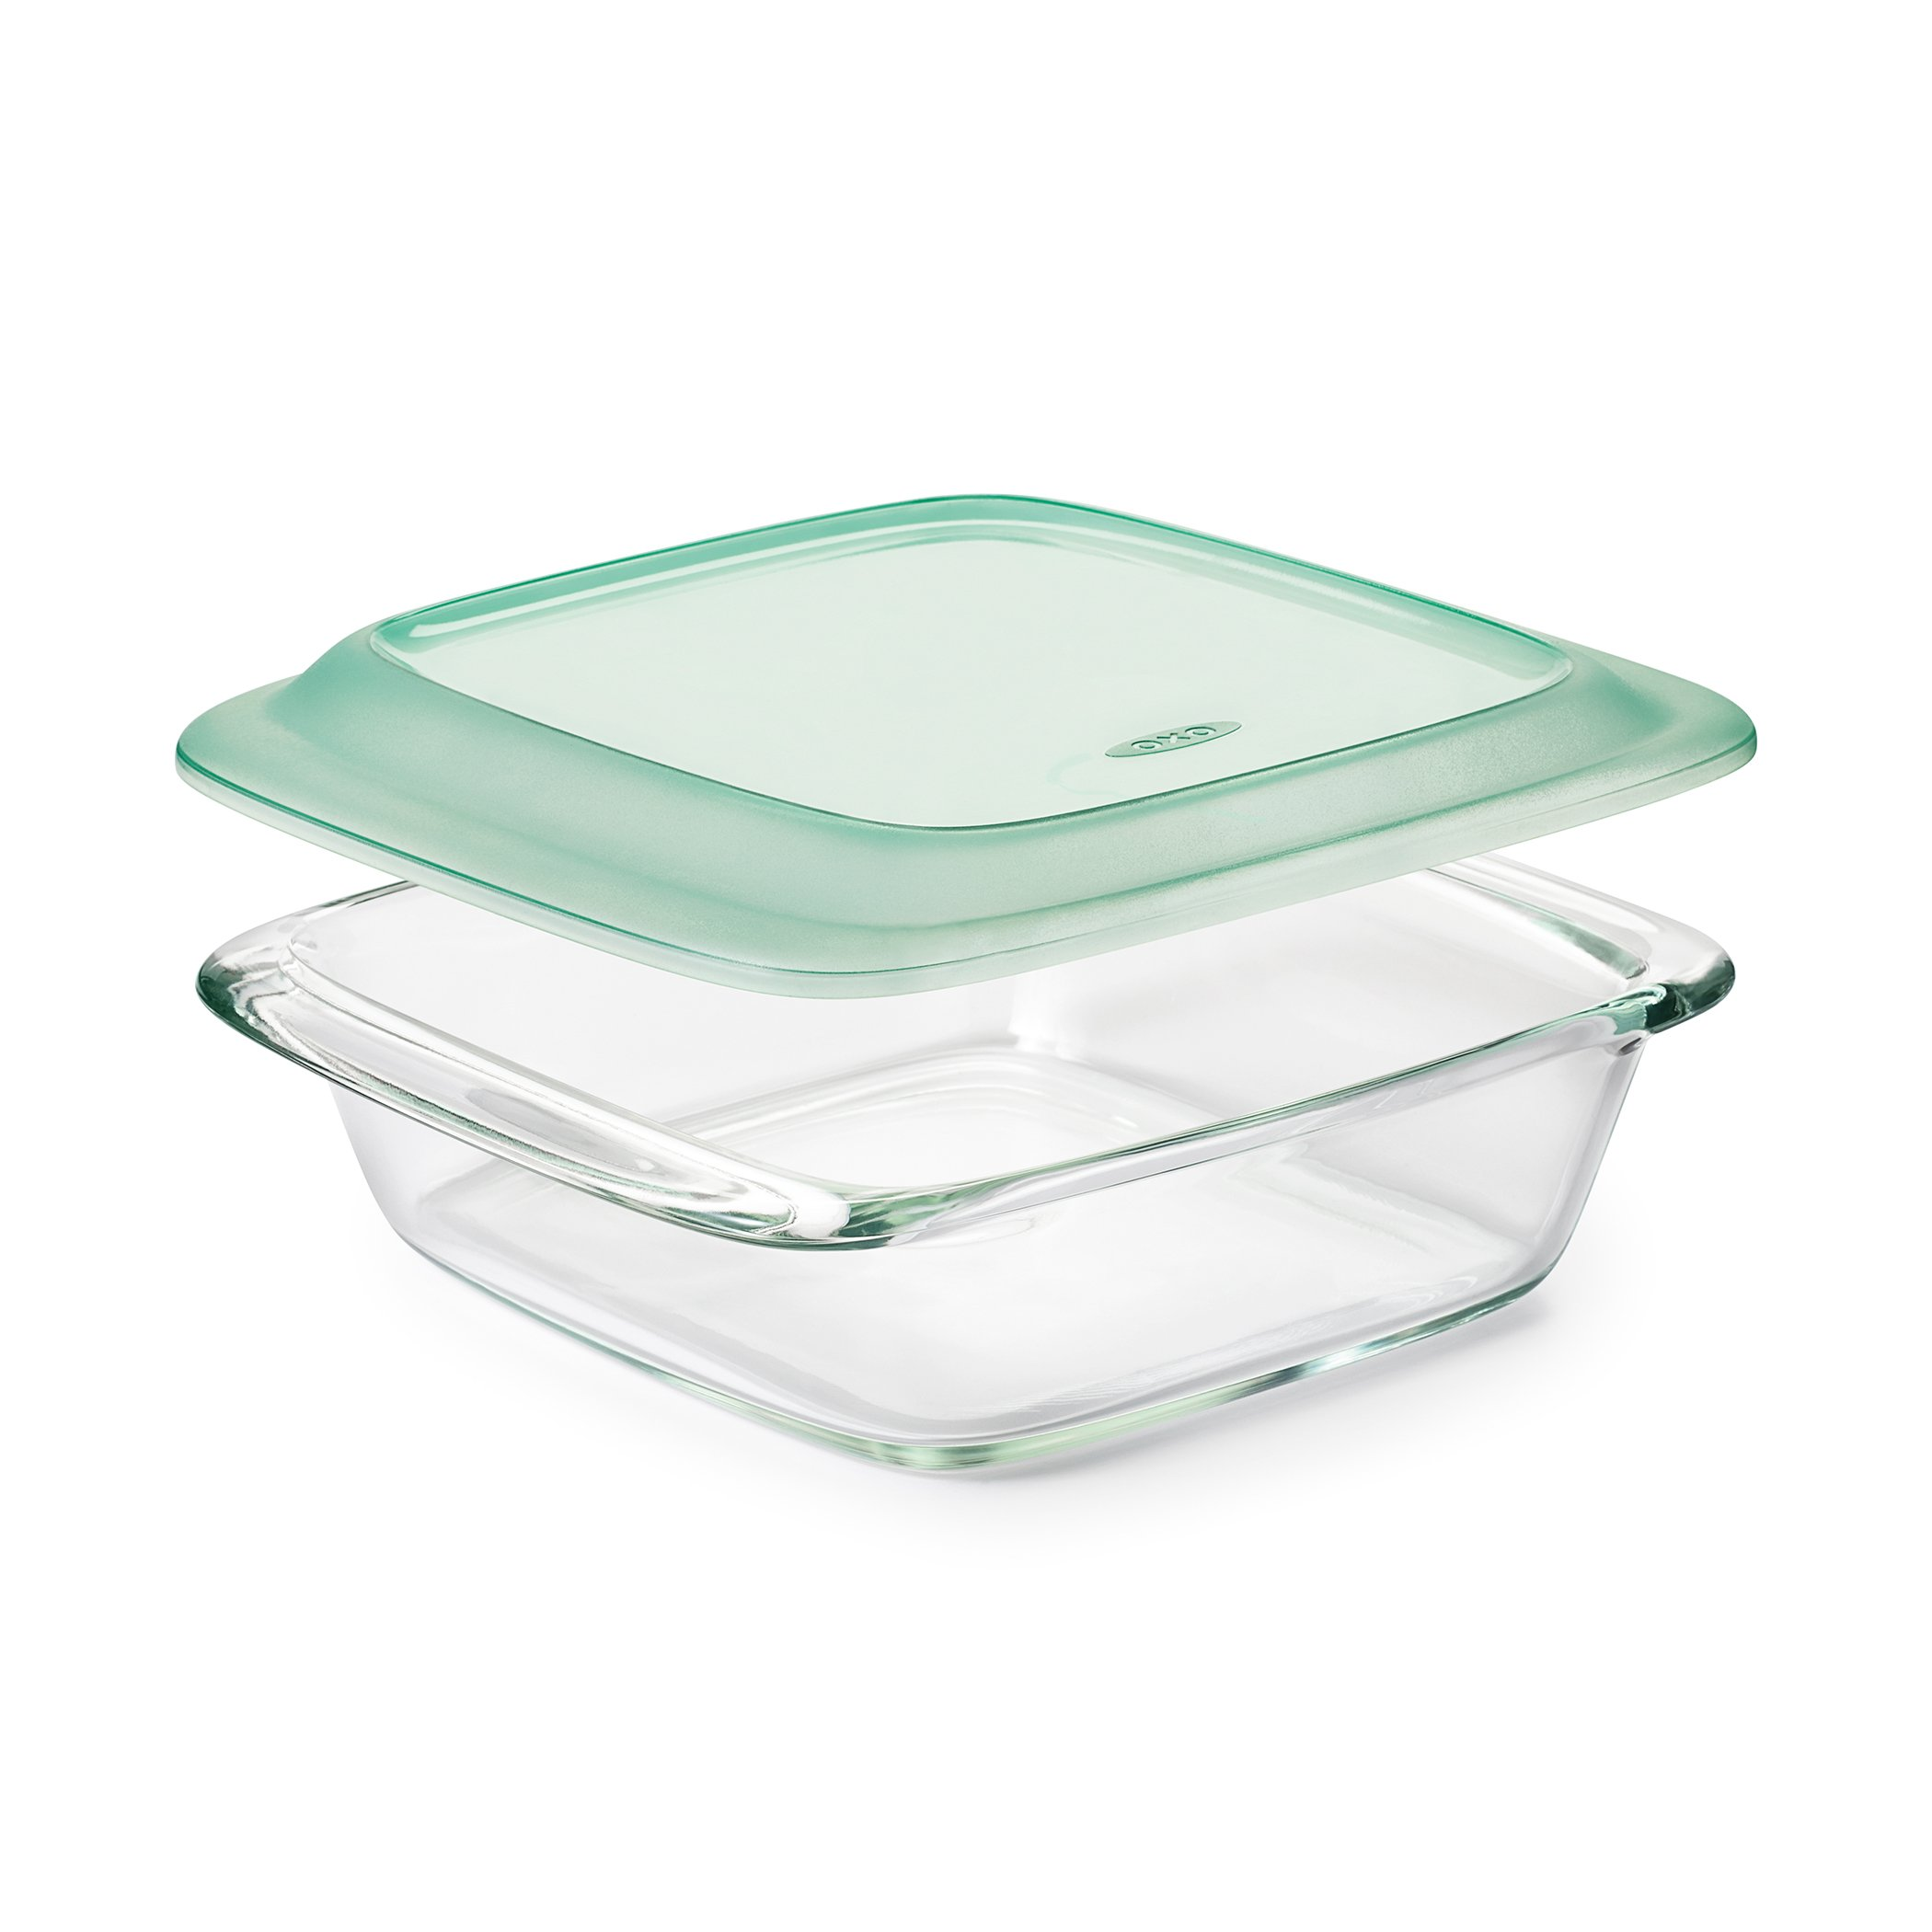 OXO Good Grips Freezer-to-Oven Safe 2 Qt Glass Baking Dish with Lid, 8 x 8 by OXO